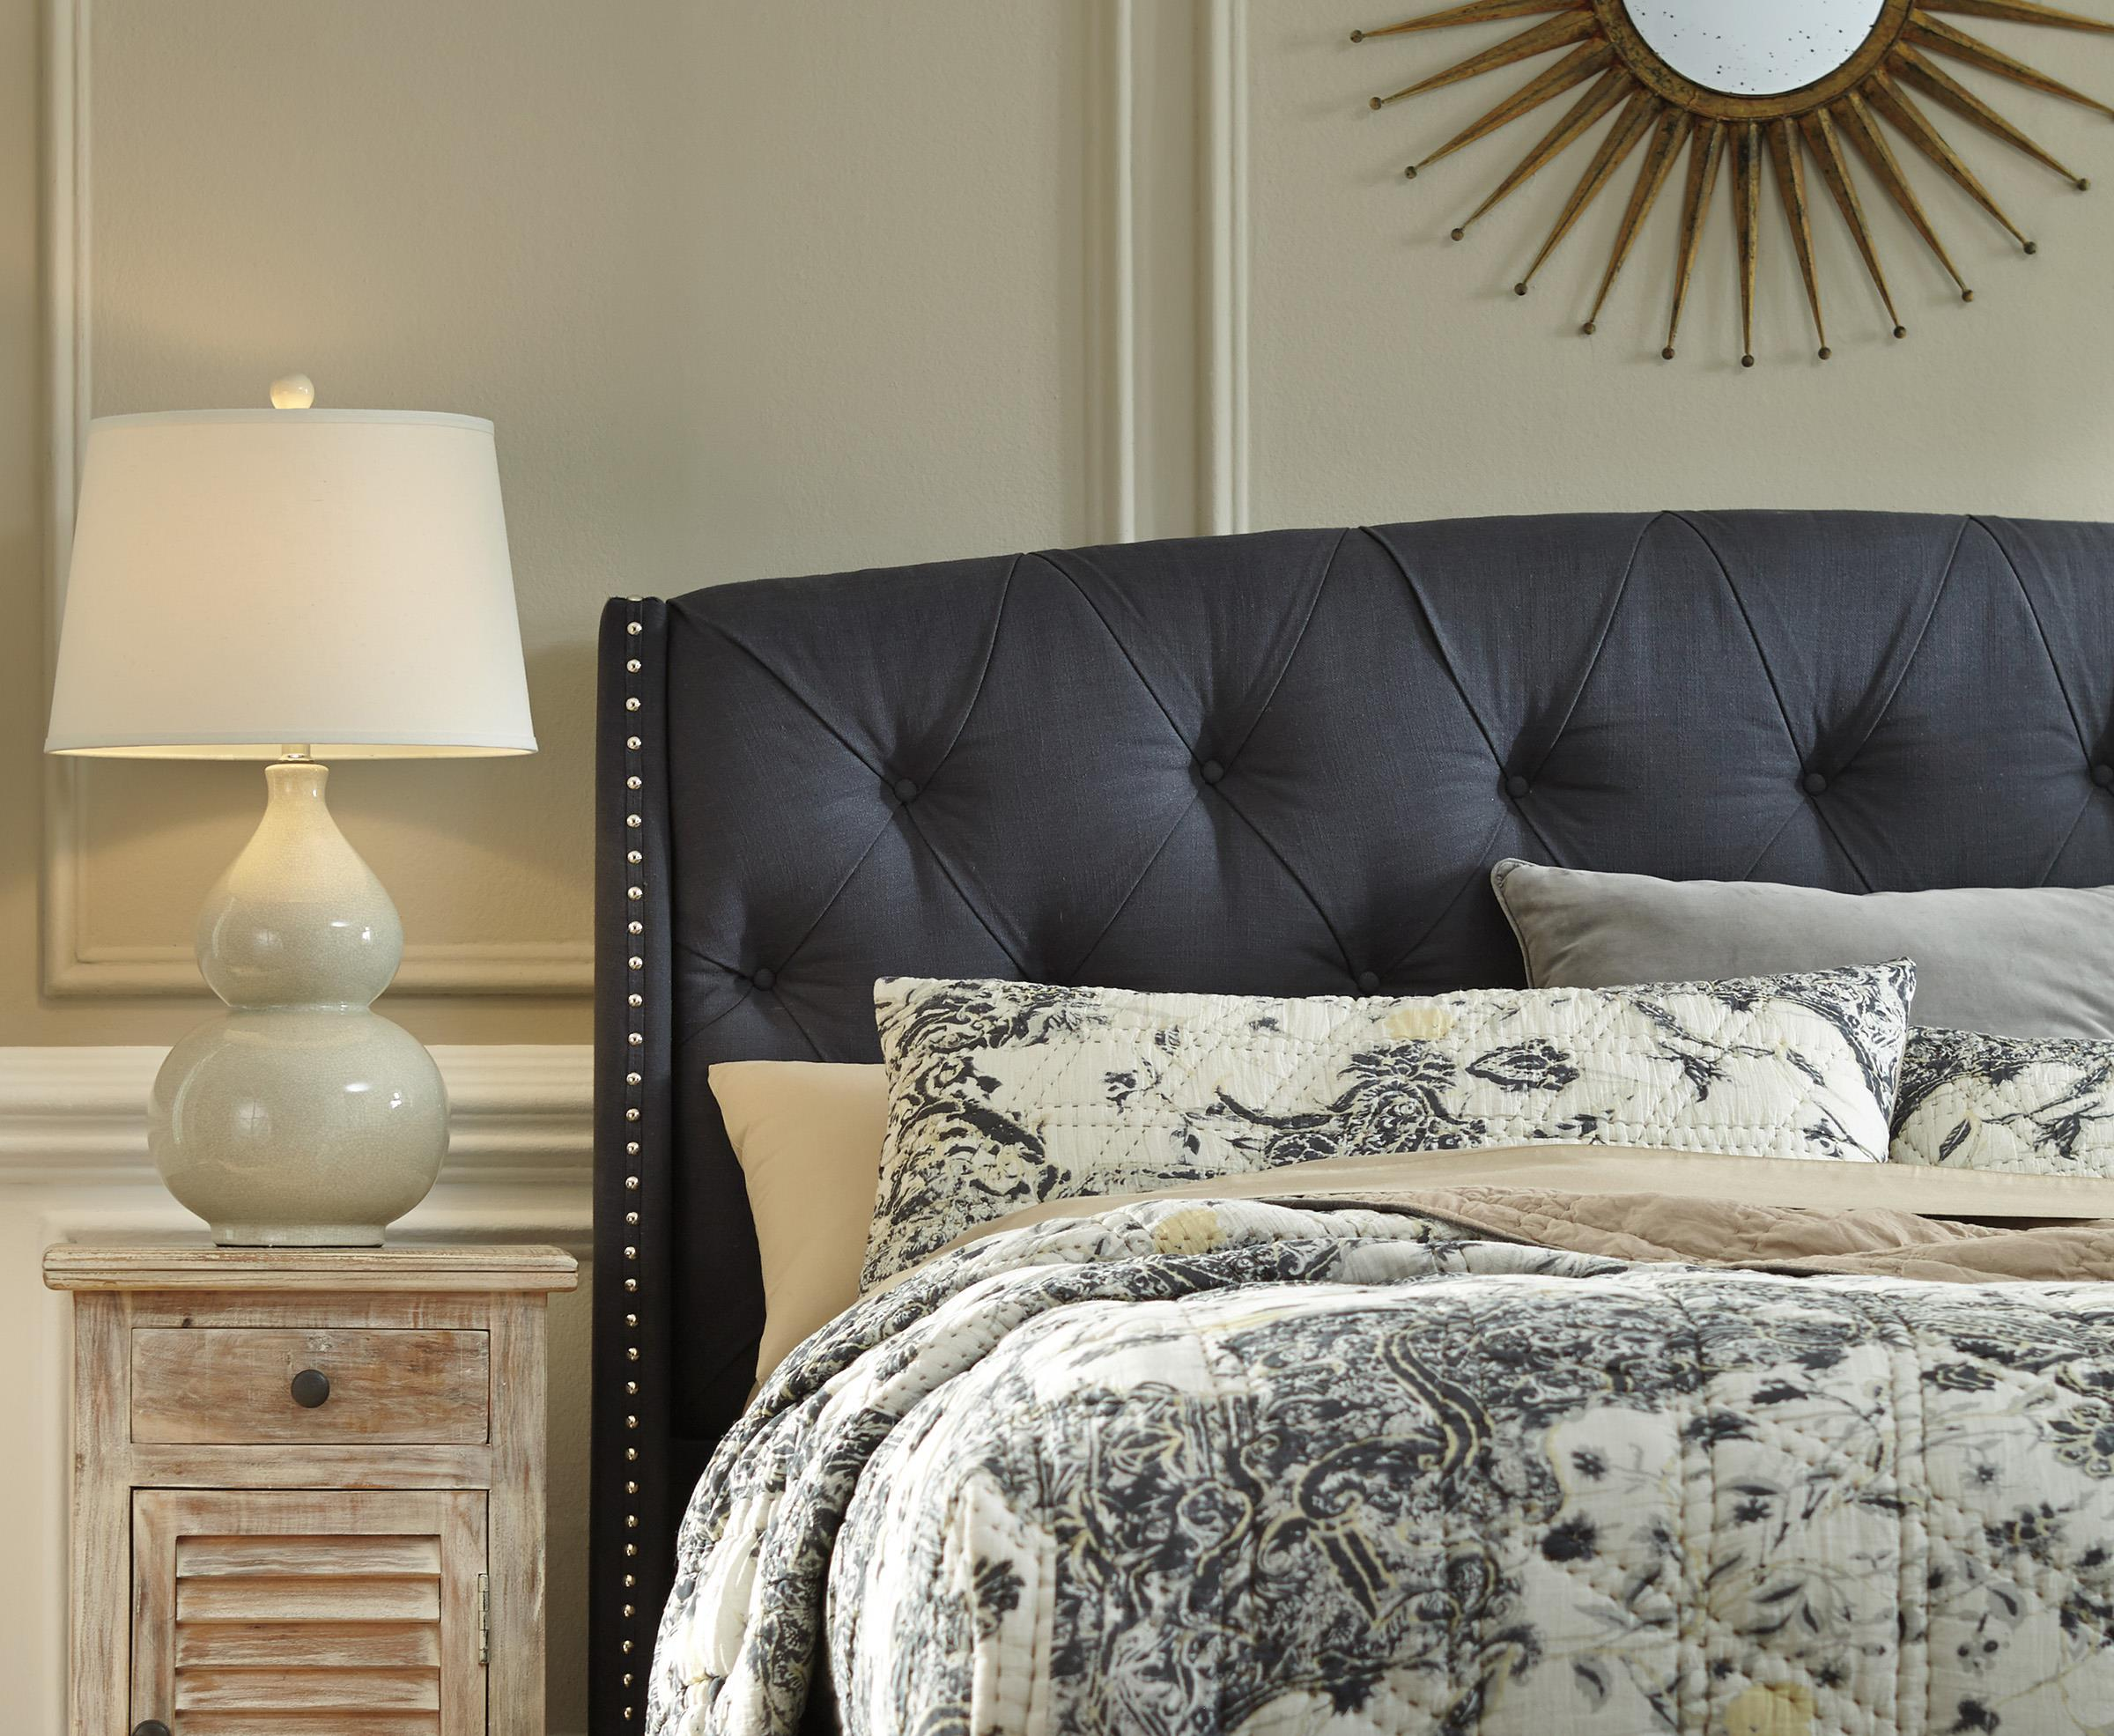 Signature Design By Ashley Kasidon Queen Upholstered Headboard In Dark Gray With Tufting And